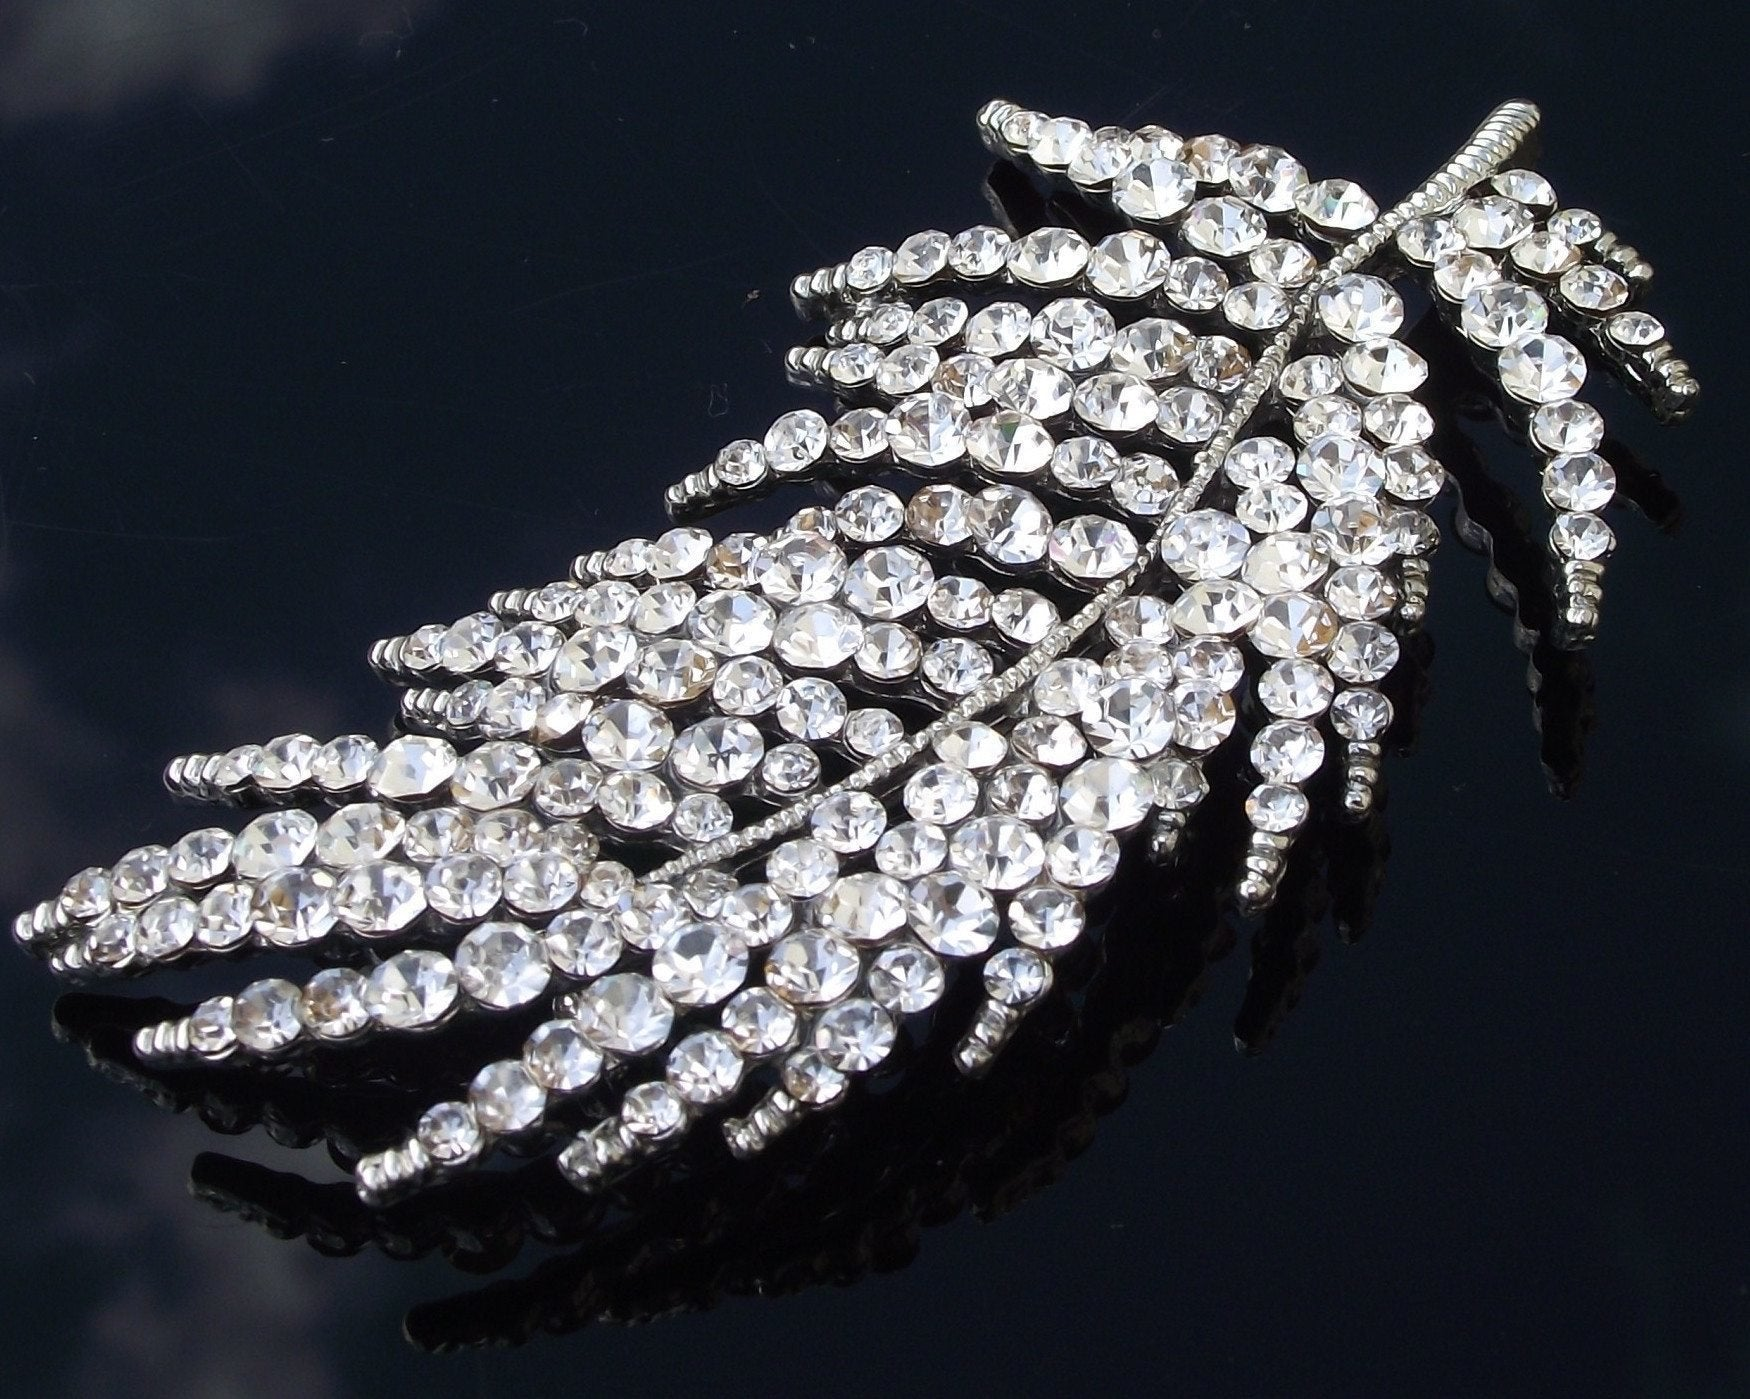 Wedding Brooches - Rhinestone Crystal Leaf Or Feather Style Brooch Pin, Trish